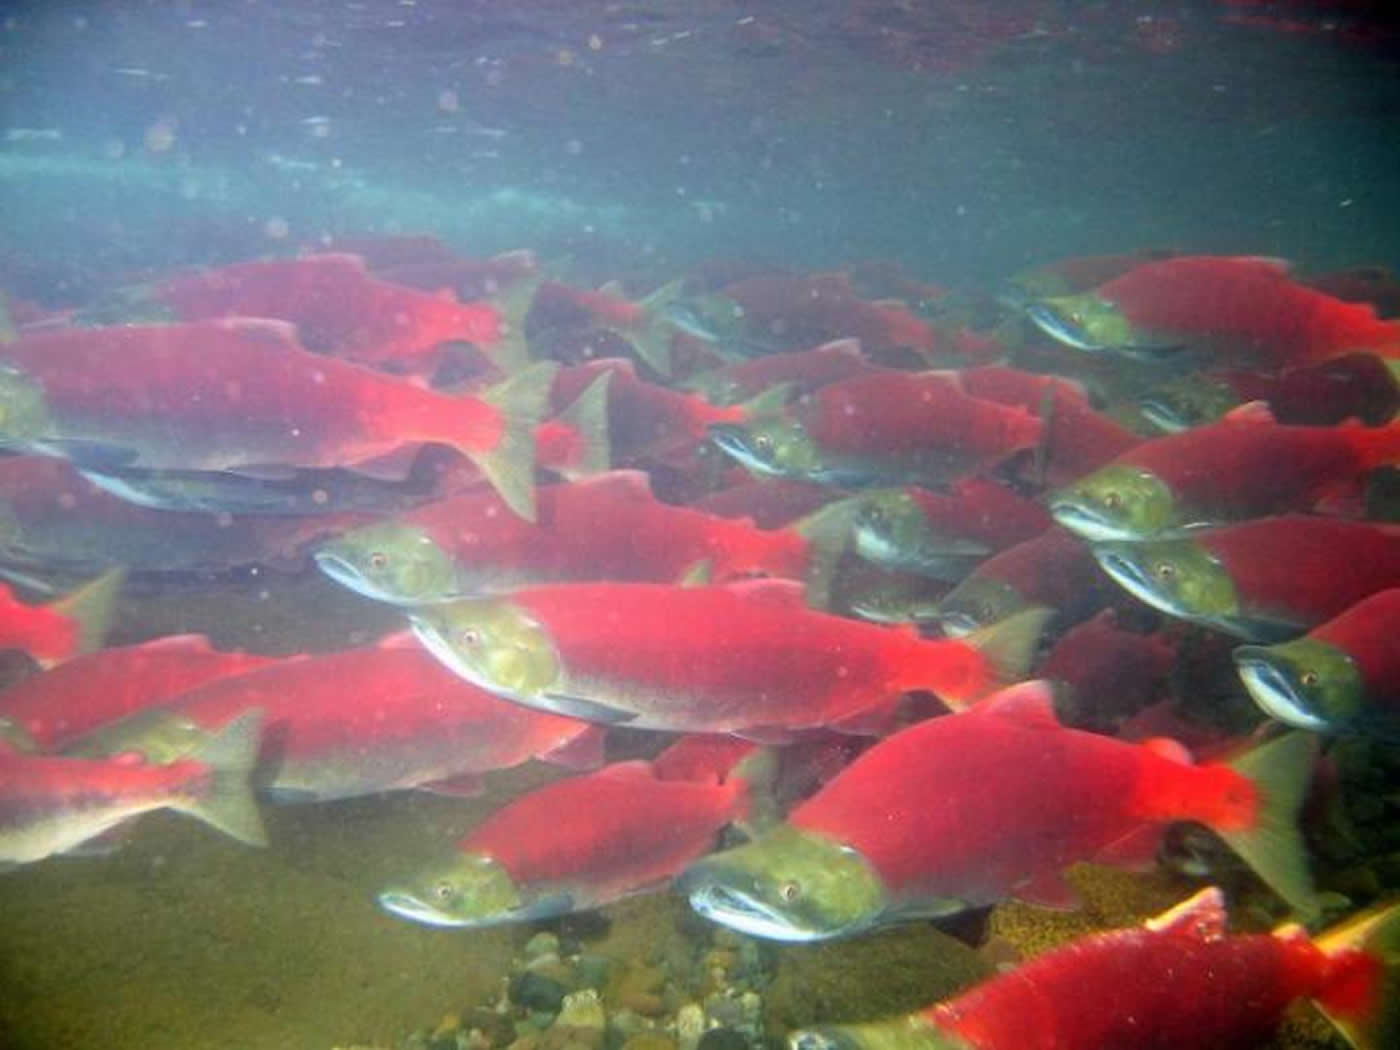 Image shows red salmon swimming in a murky lake.